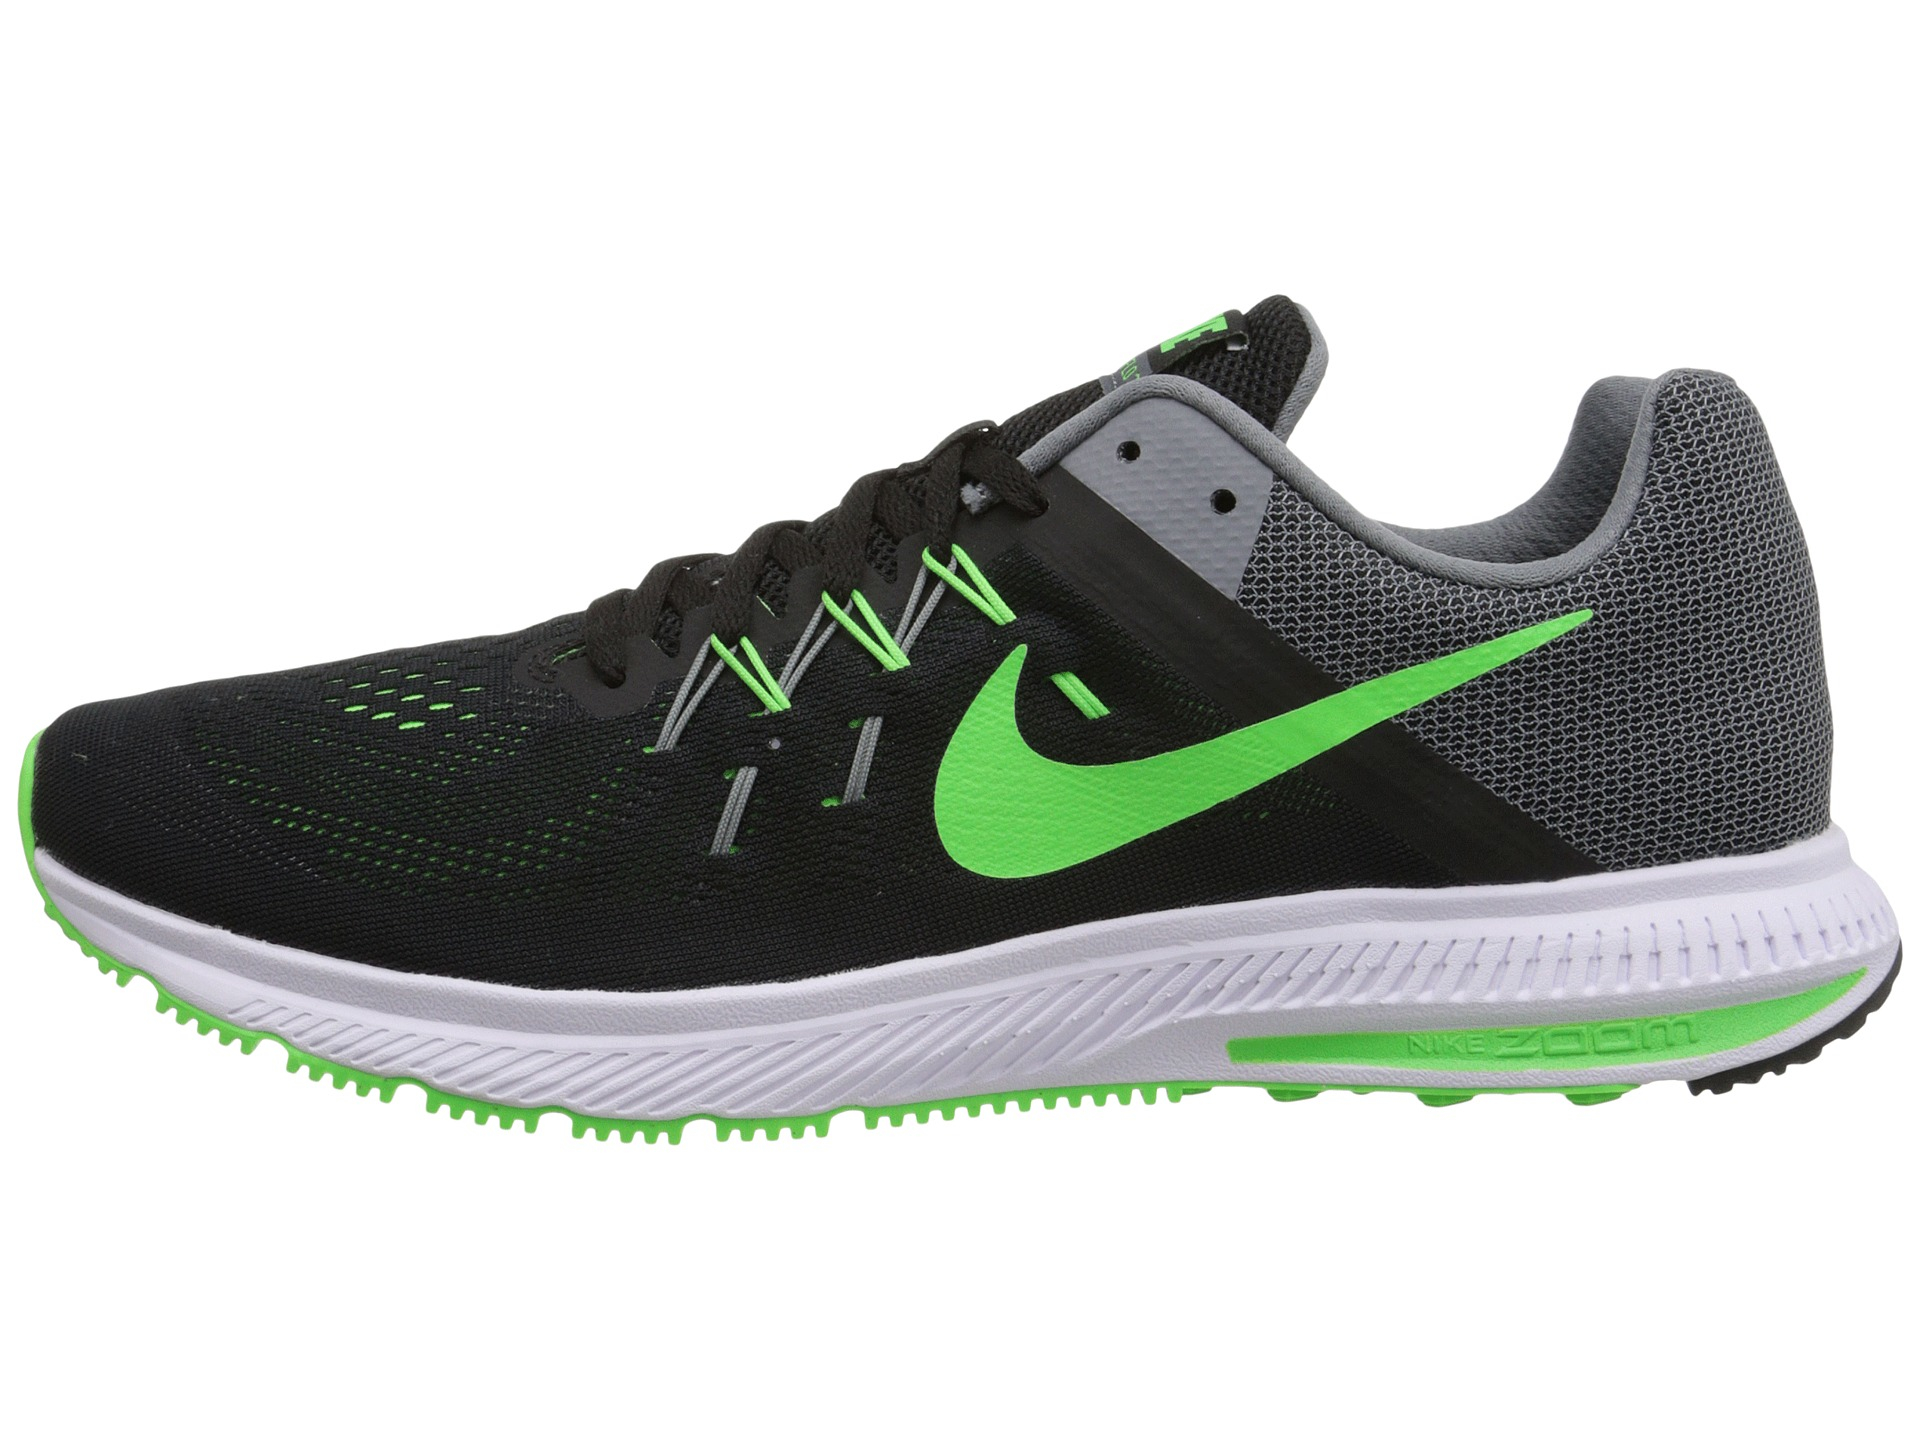 5f0de1aea1e0 ... running shoes upcitemdb 06f56 73564  promo code lyst nike zoom winflo 2  in black for men c50ad a8f7f